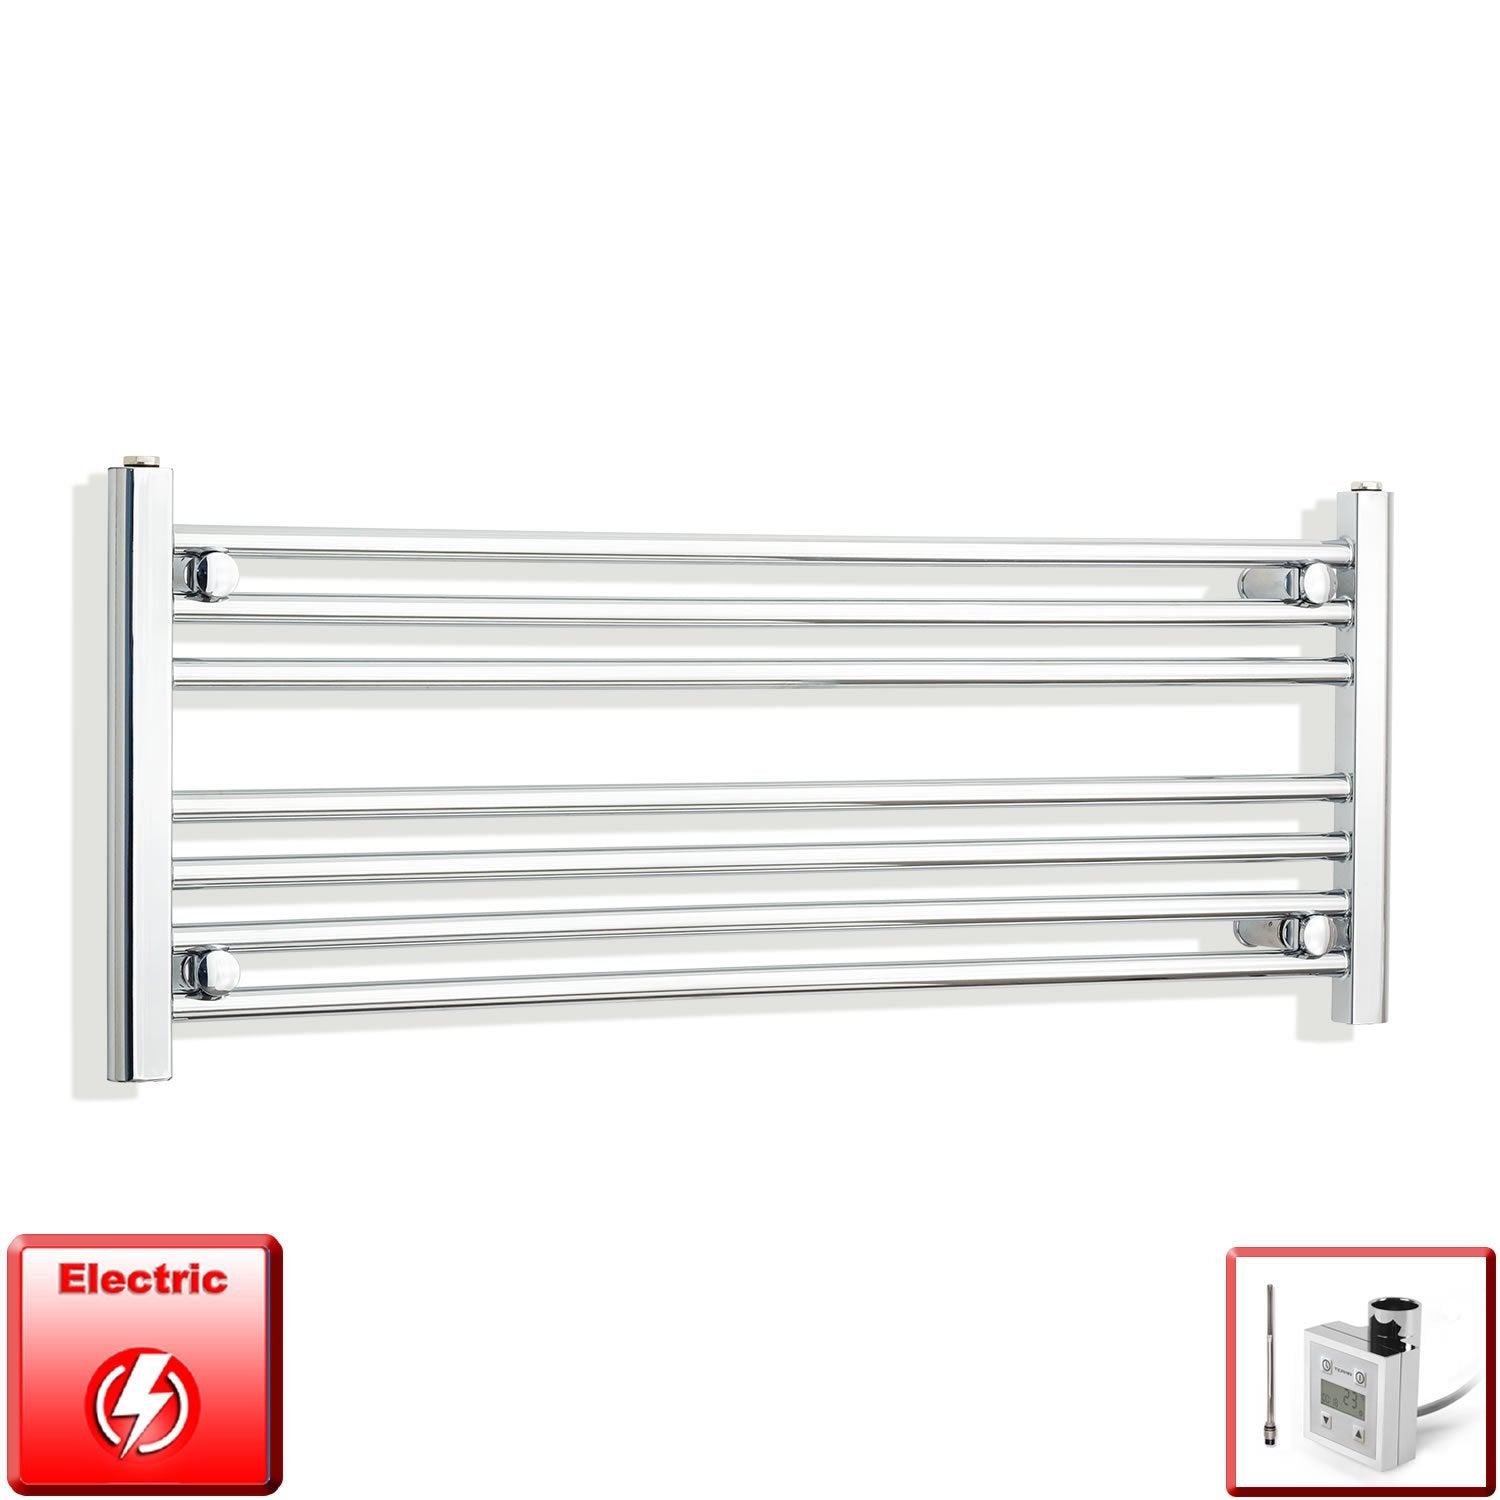 950mm Wide 400mm High Flat Chrome Pre-Filled Electric Heated Towel Rail Radiator HTR,KTX-3 Thermostatic Element